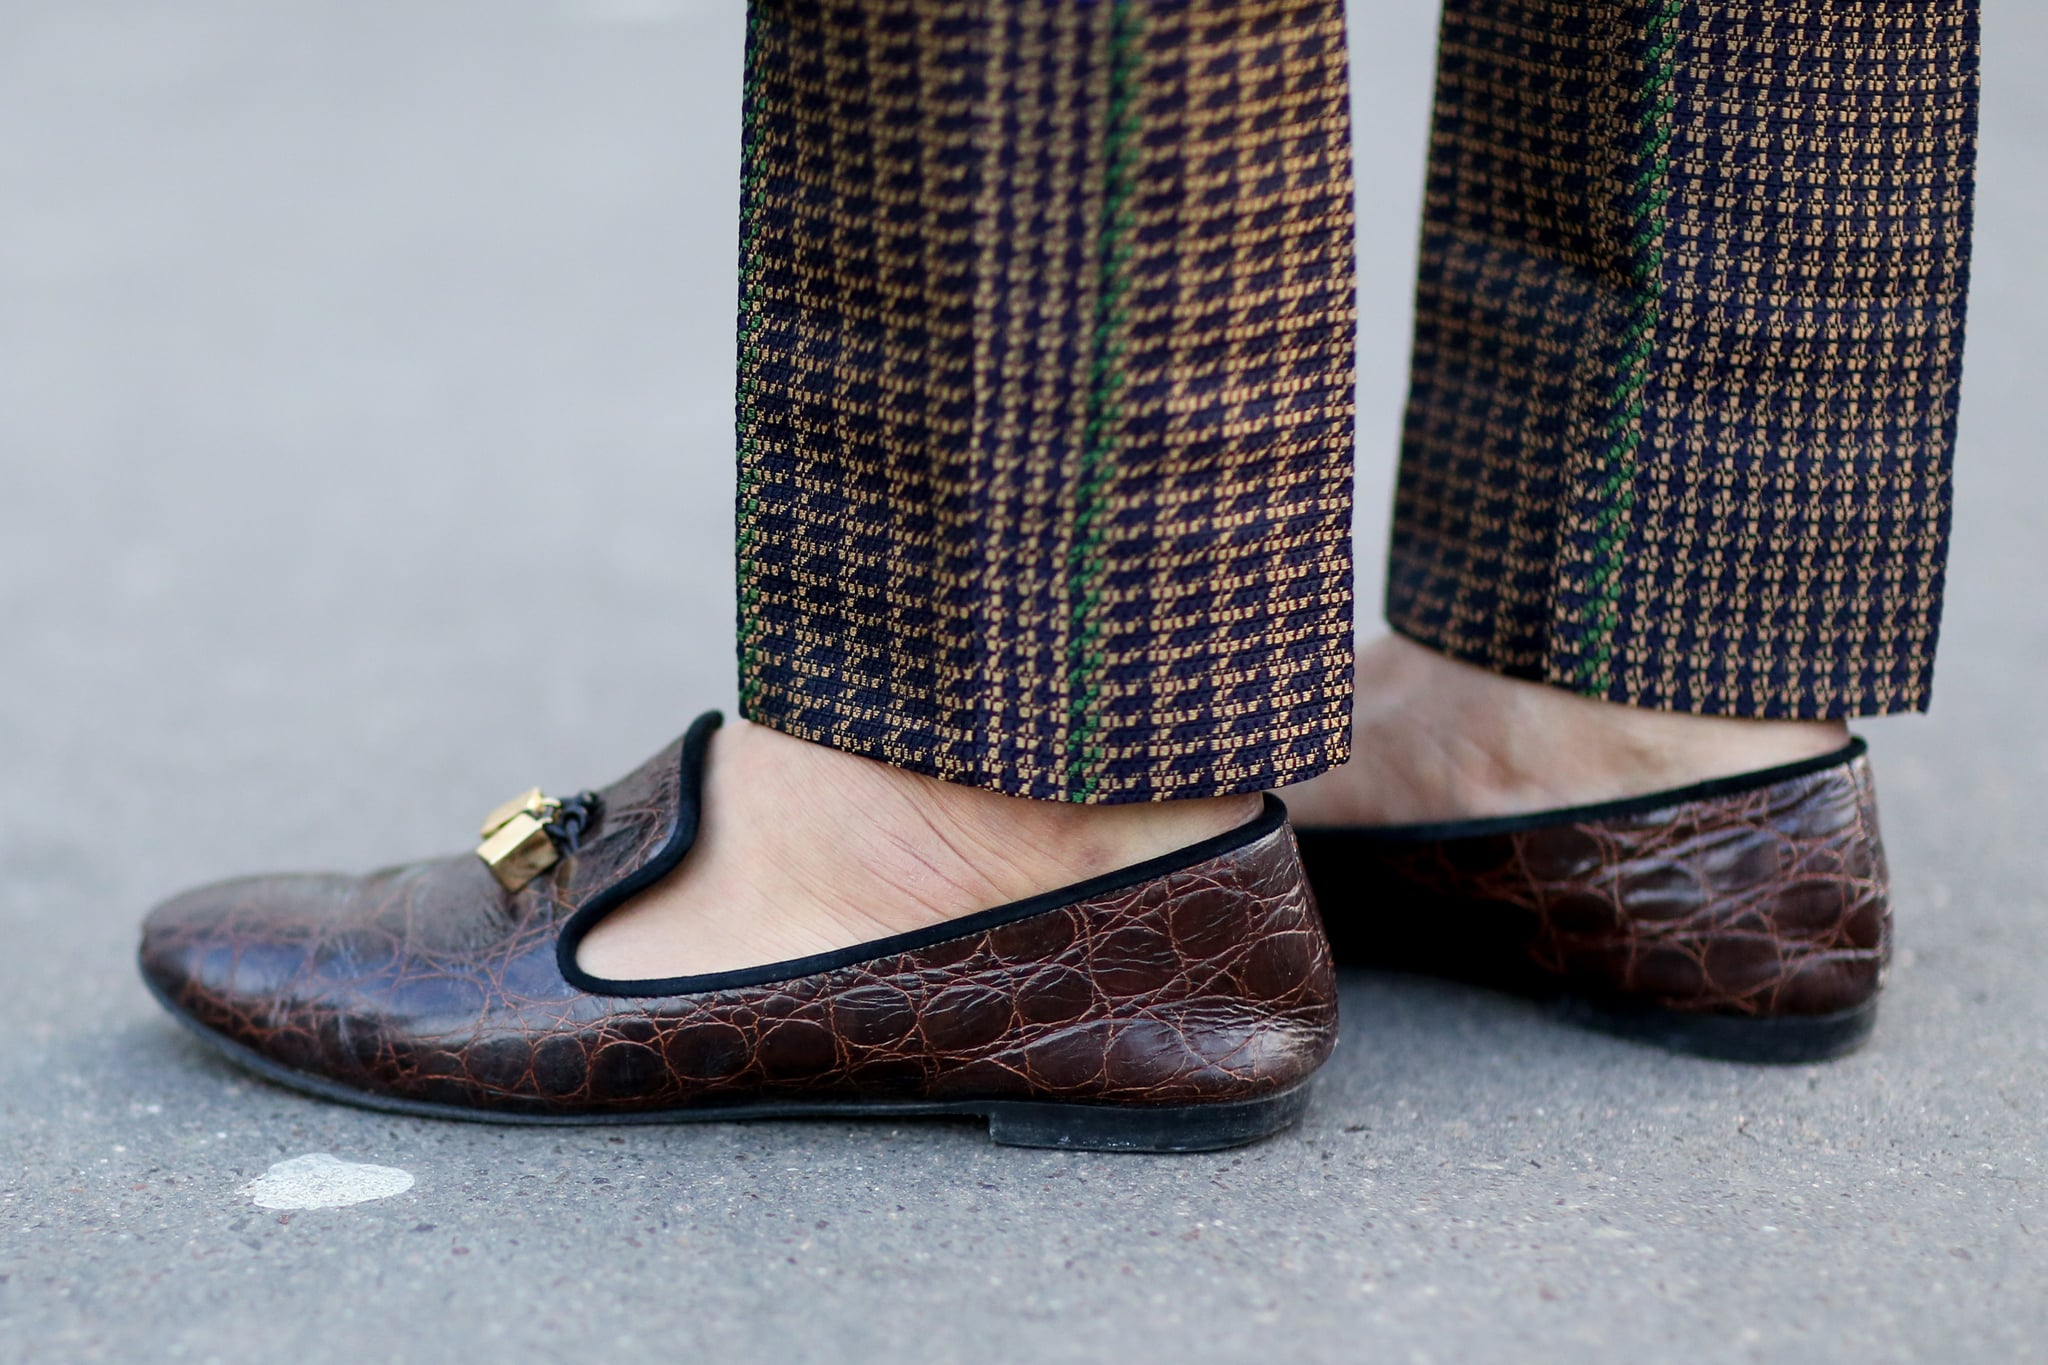 Even the guys bring out the enviable footwear at Paris Fashion Week.